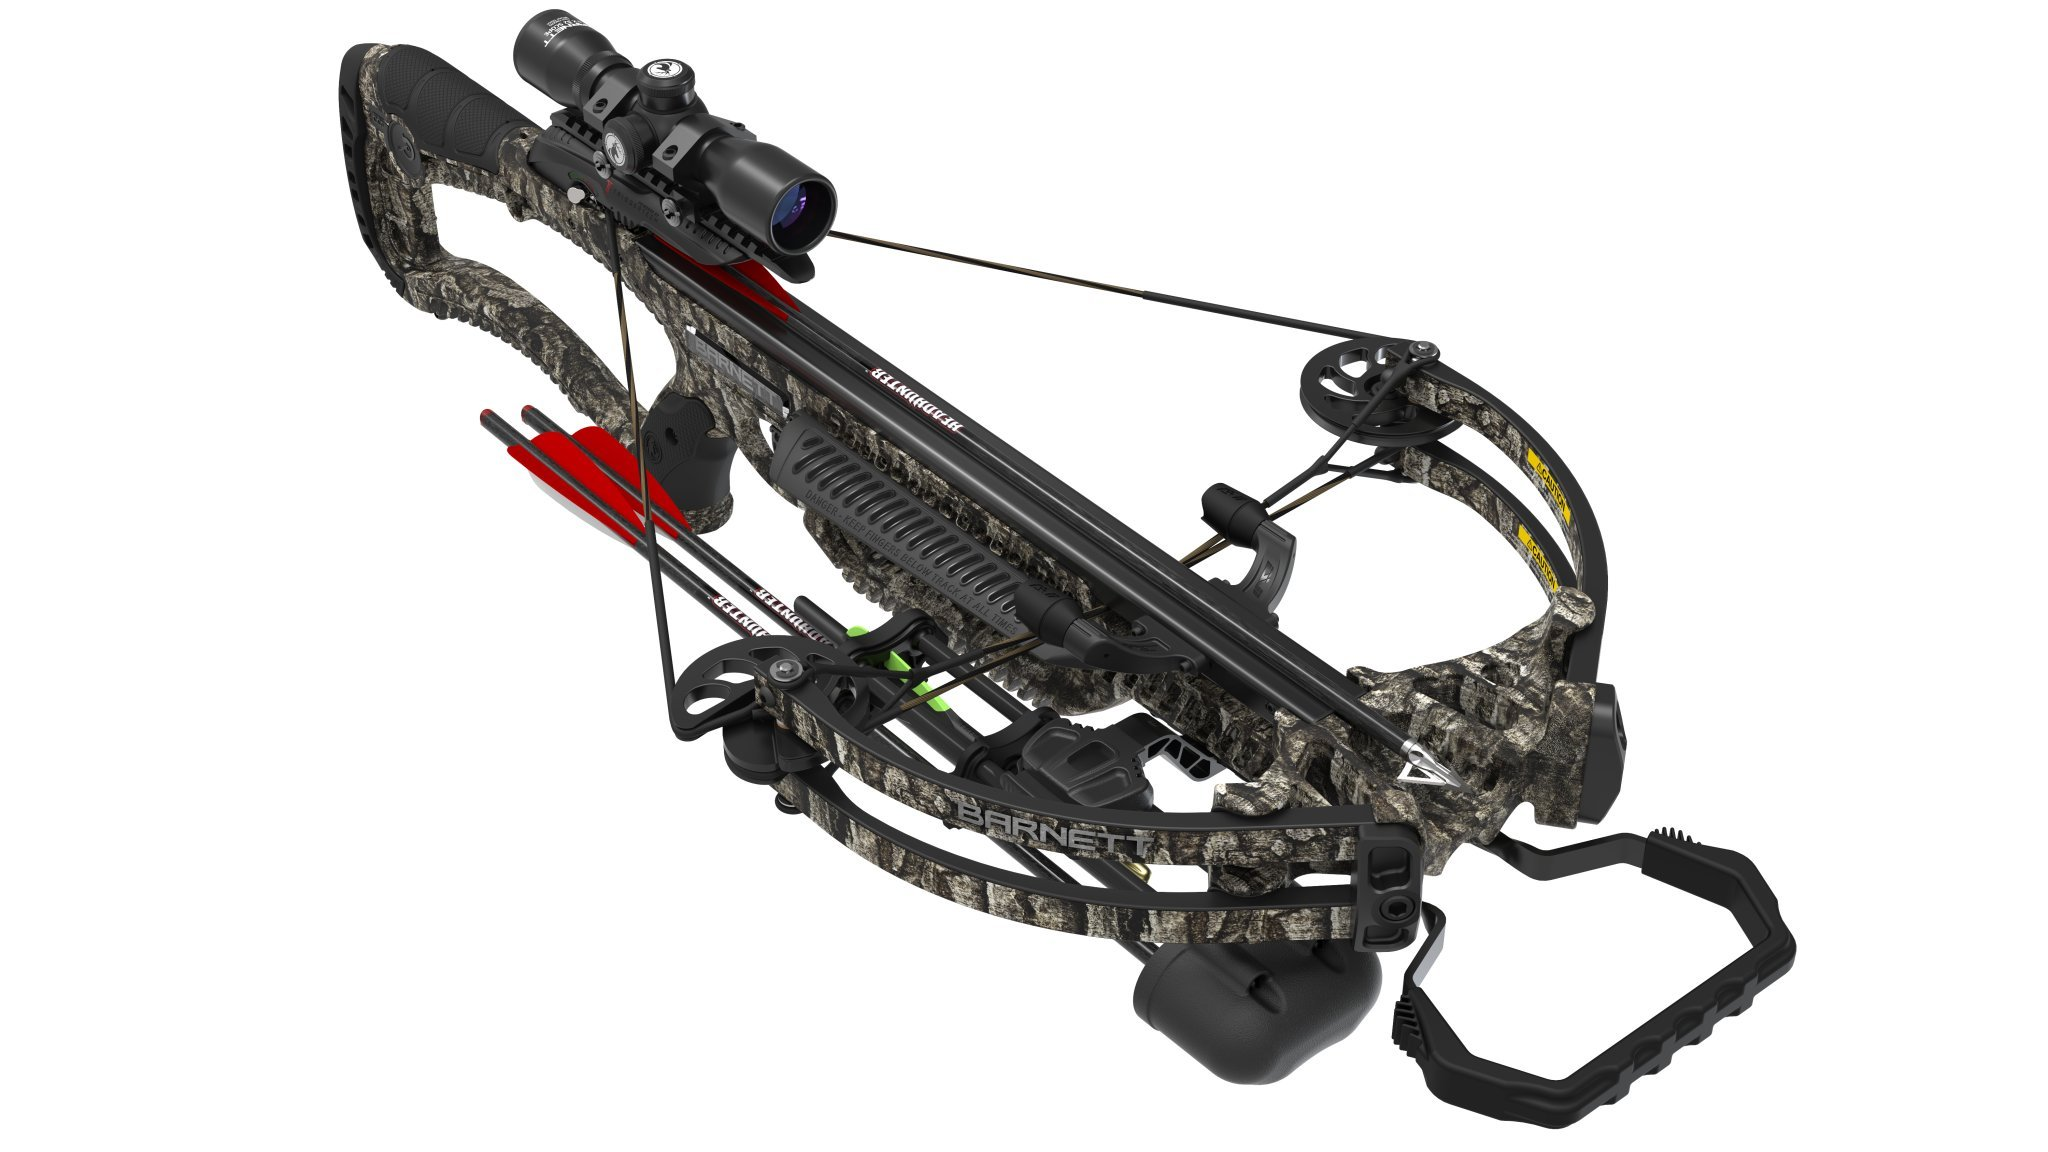 Barnett Whitetail Hunter Pro Crossbow, 380 FPS, Trubark Camo by Barnett (Image #1)